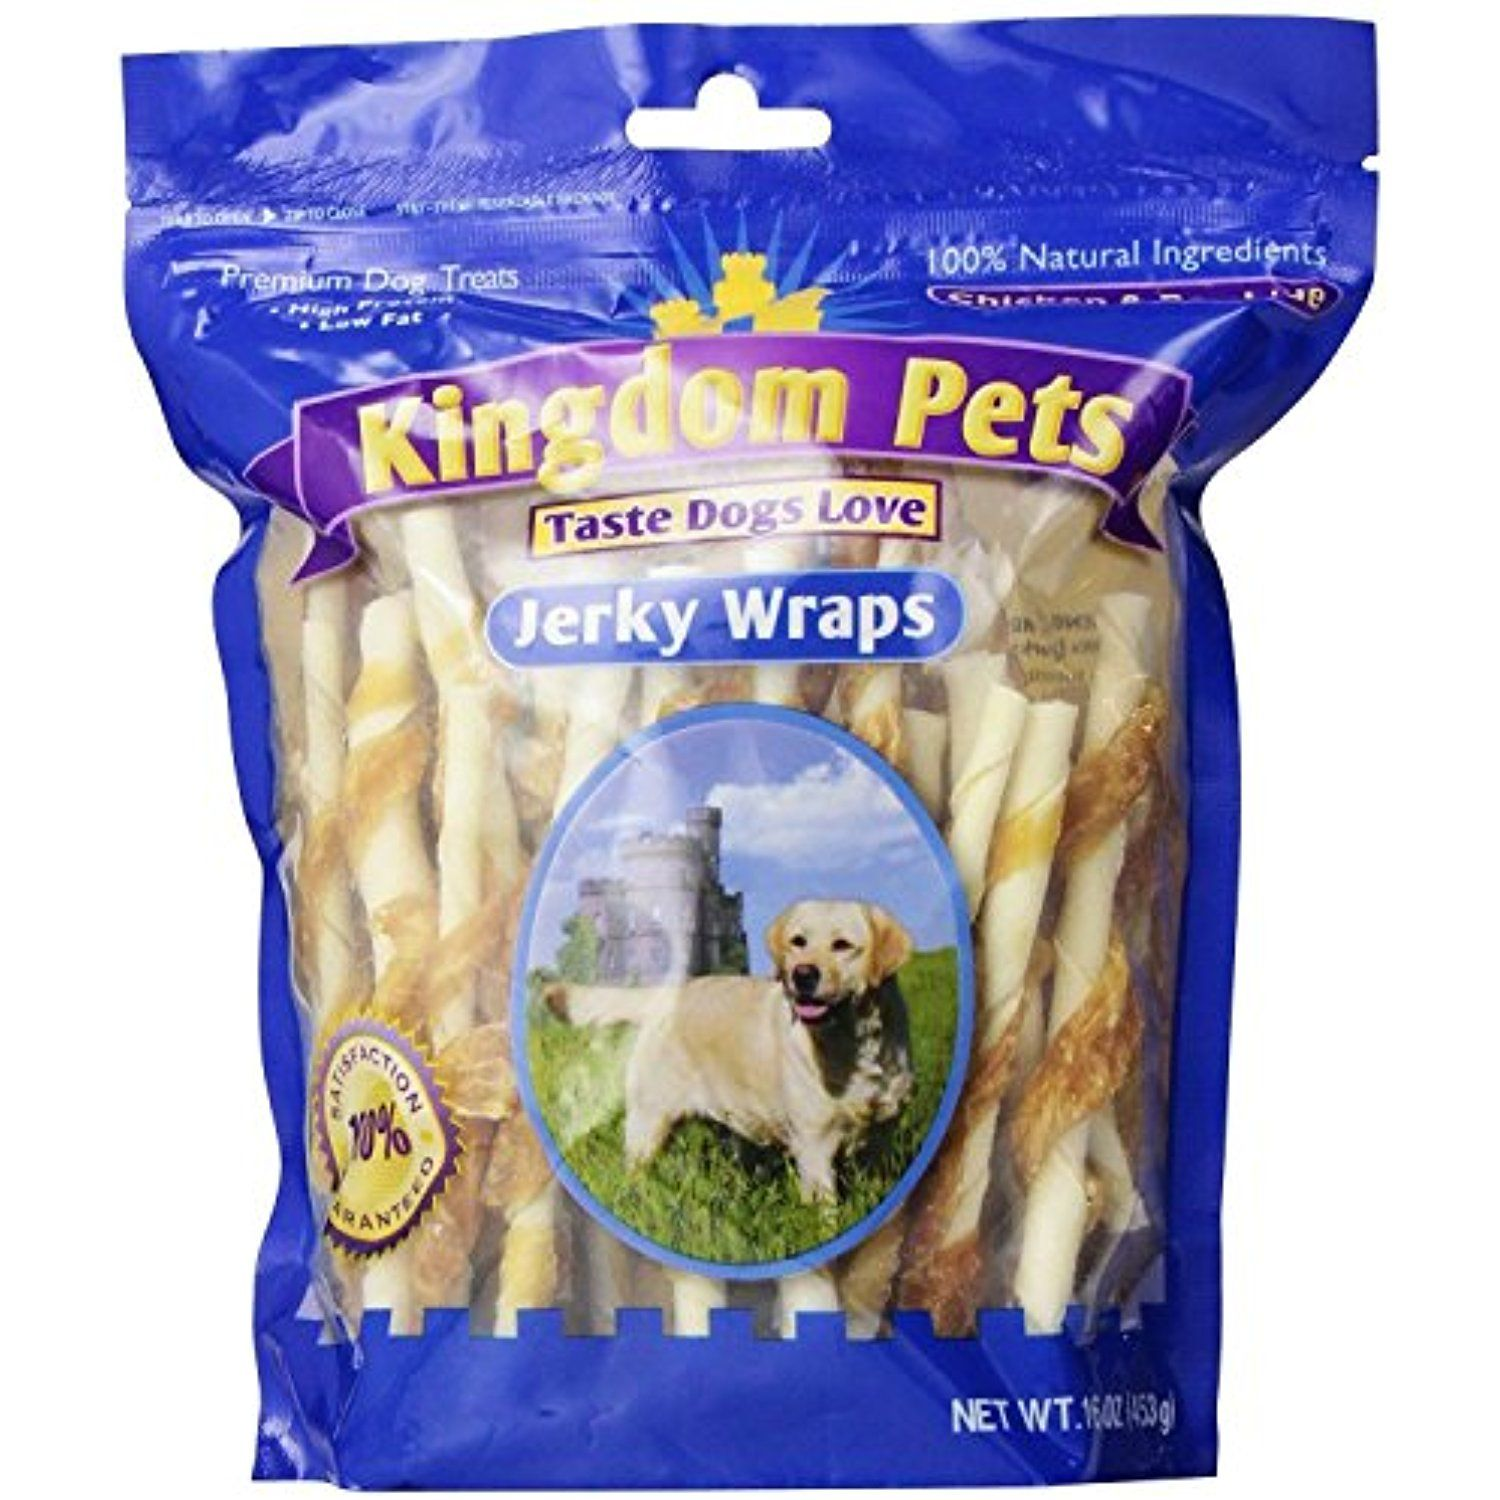 Kingdom Pets Premium Dog Treats Chicken And Rawhide Jerky Wraps 16 Ounce Bag You Can Read More Reviews Of The Pr Premium Dog Treats Dog Treats Dog Snacks